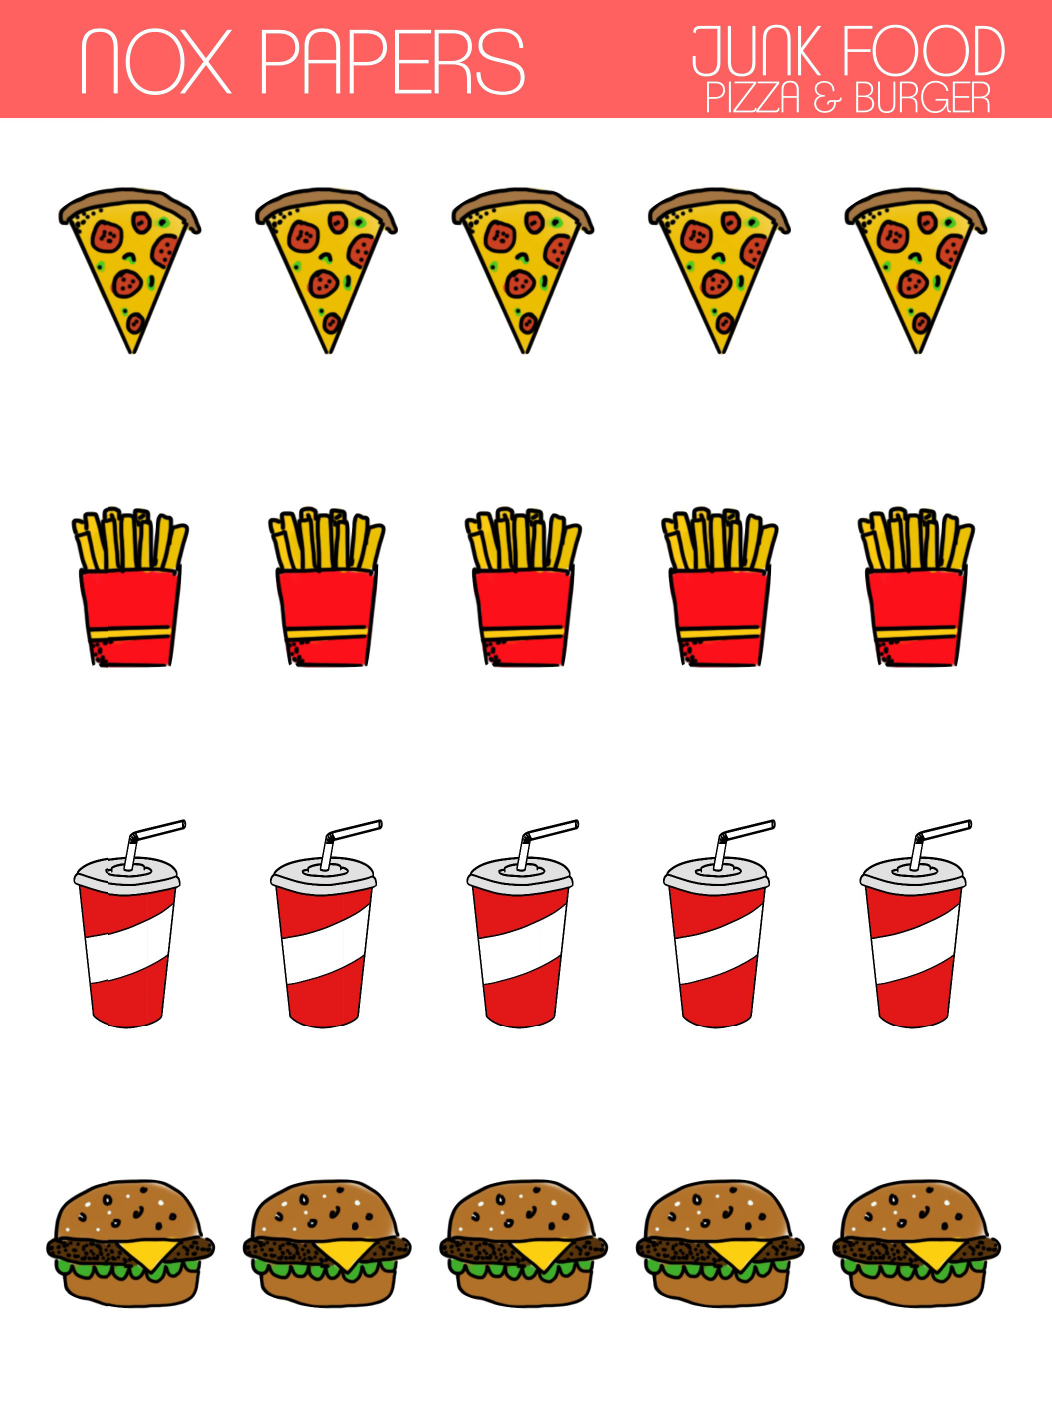 Junkfood (Pizza & Burger)